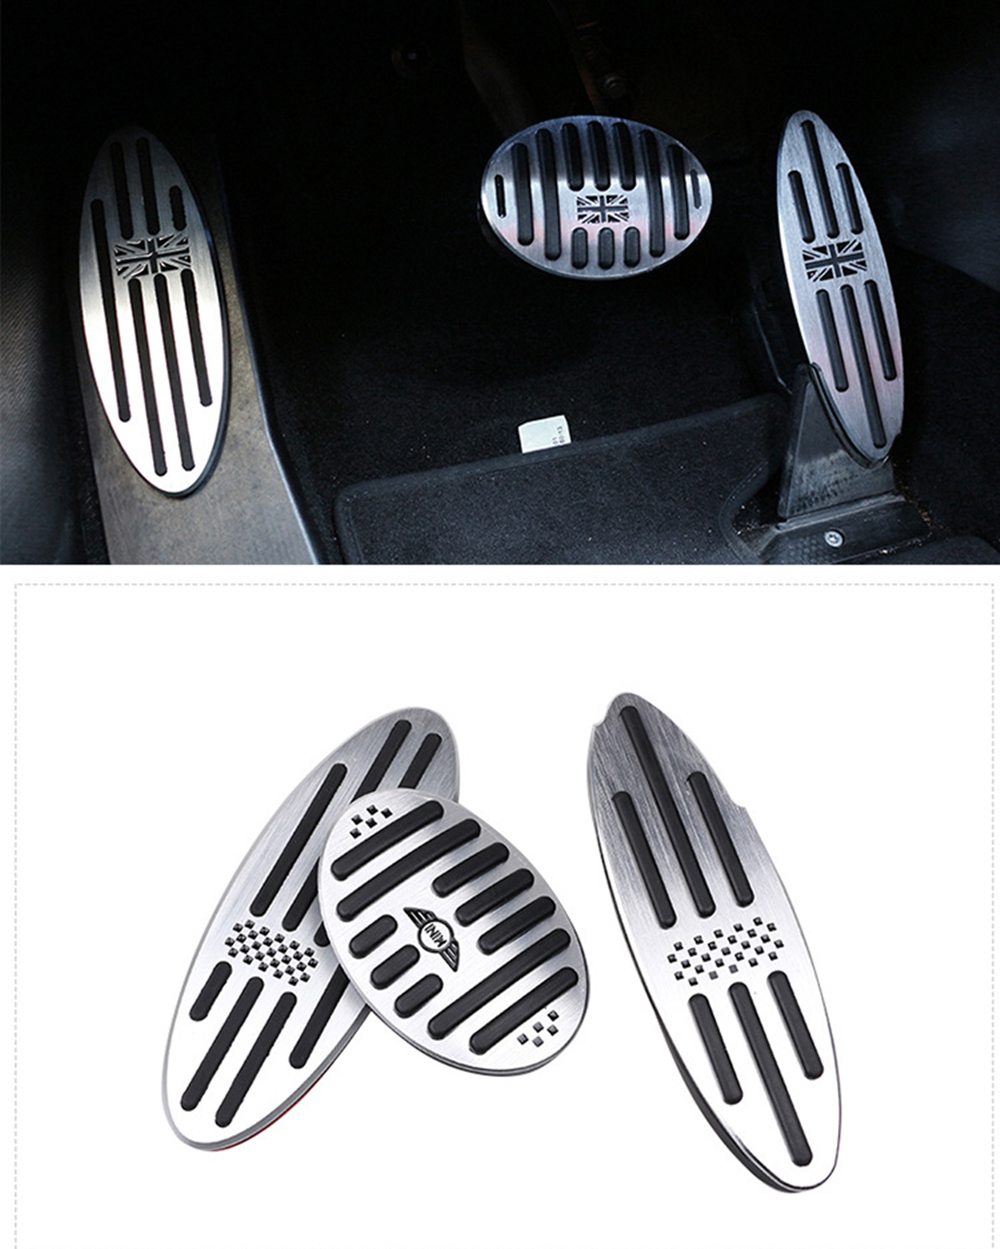 Car Accessories for BMW Mini Cooper S R55 R56 R60 R61 F54 F55 F56 F60 Aluminum Footrest Gas Brake Clutch Pedal Cover F56 F60 F55-in Automotive Interior Stickers from Automobiles & Motorcycles